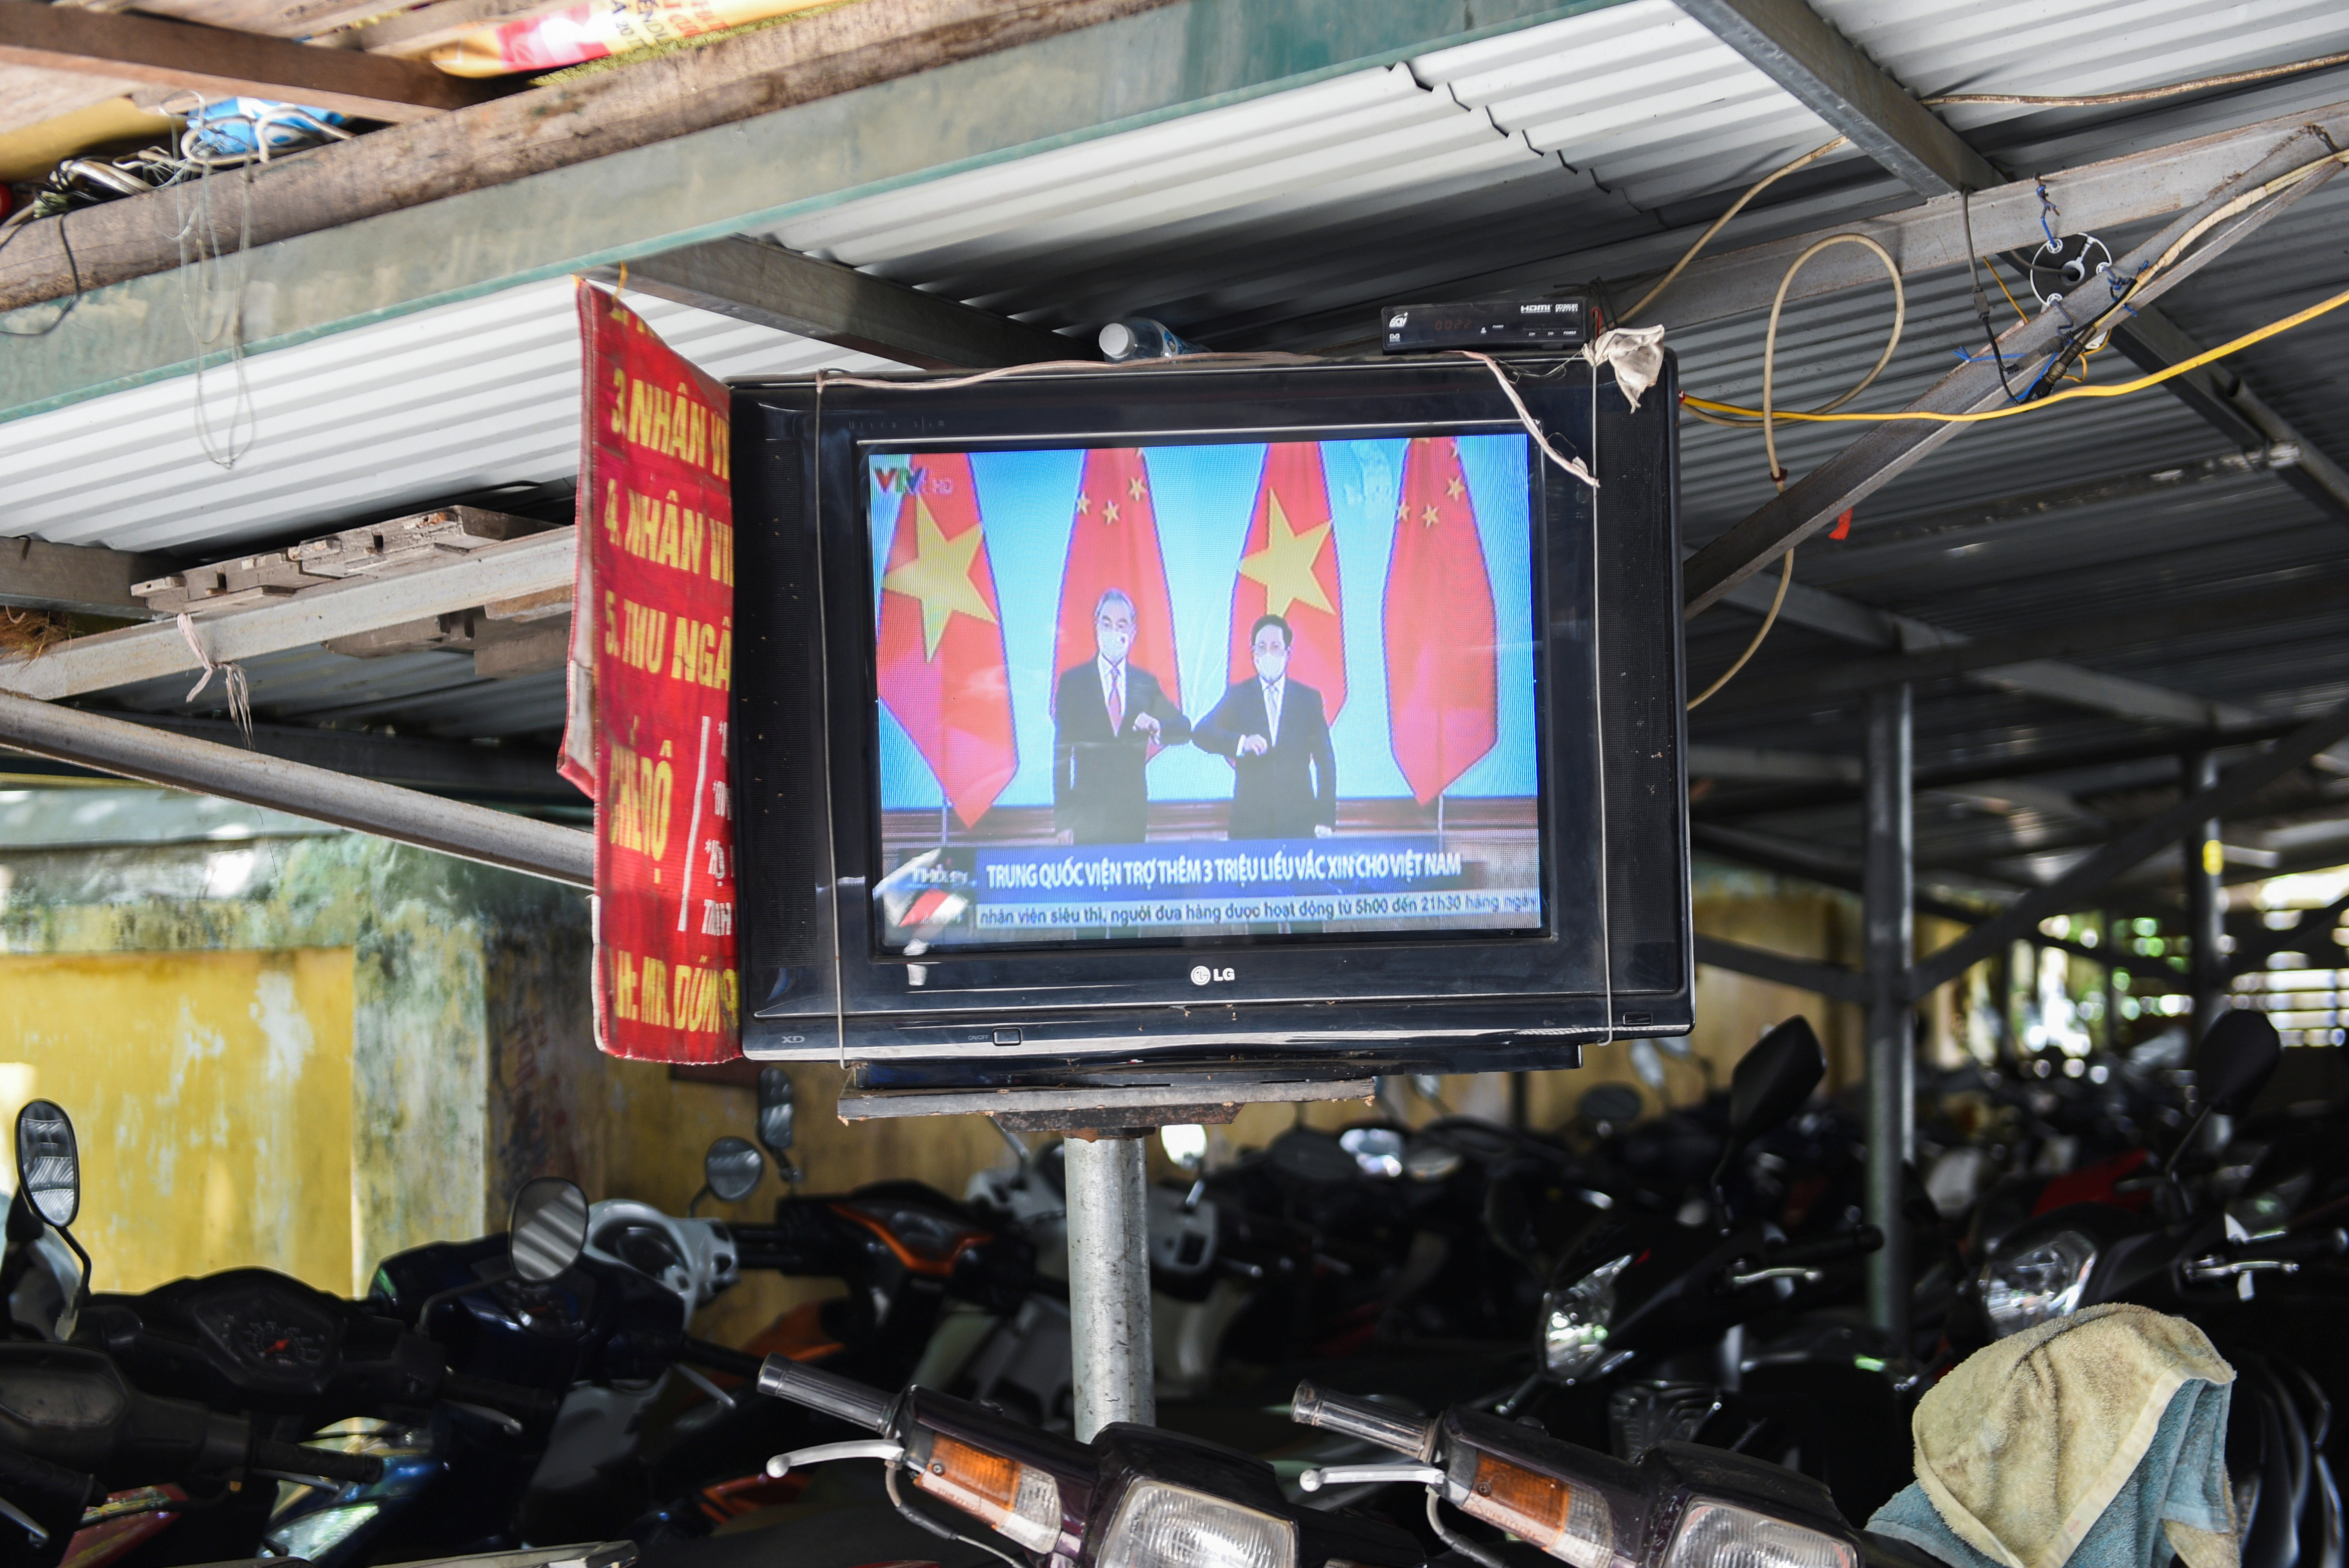 A television displays news about Chinese foreign minister Wang Yi's visit to Vietnam, at a street in Hanoi, Vietnam, September 11, 2021. REUTERS/Stringer